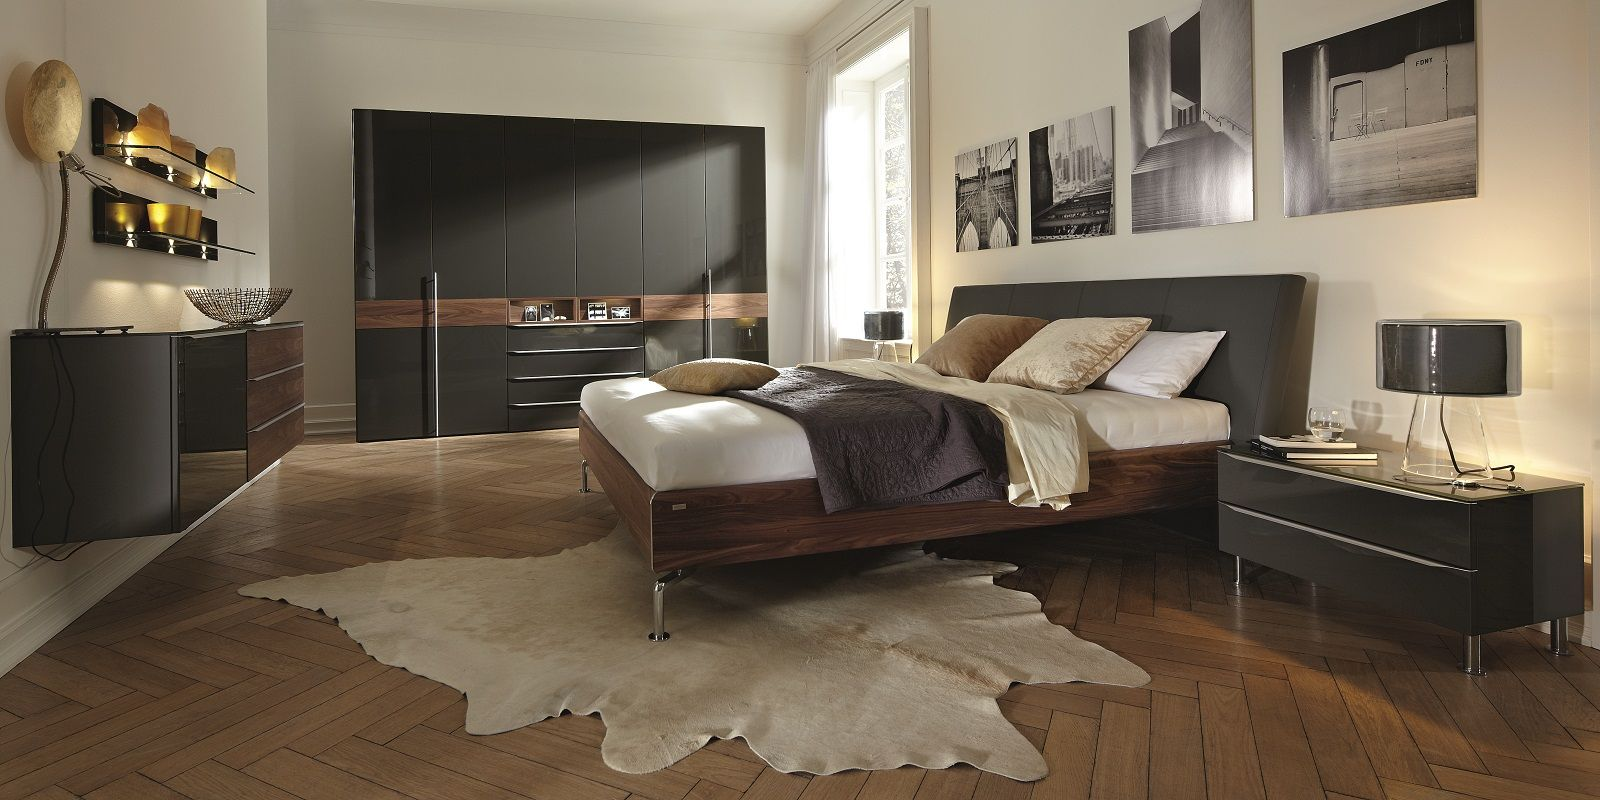 Hulsta Metis Plus Bedroom in glossy grey lacquer with